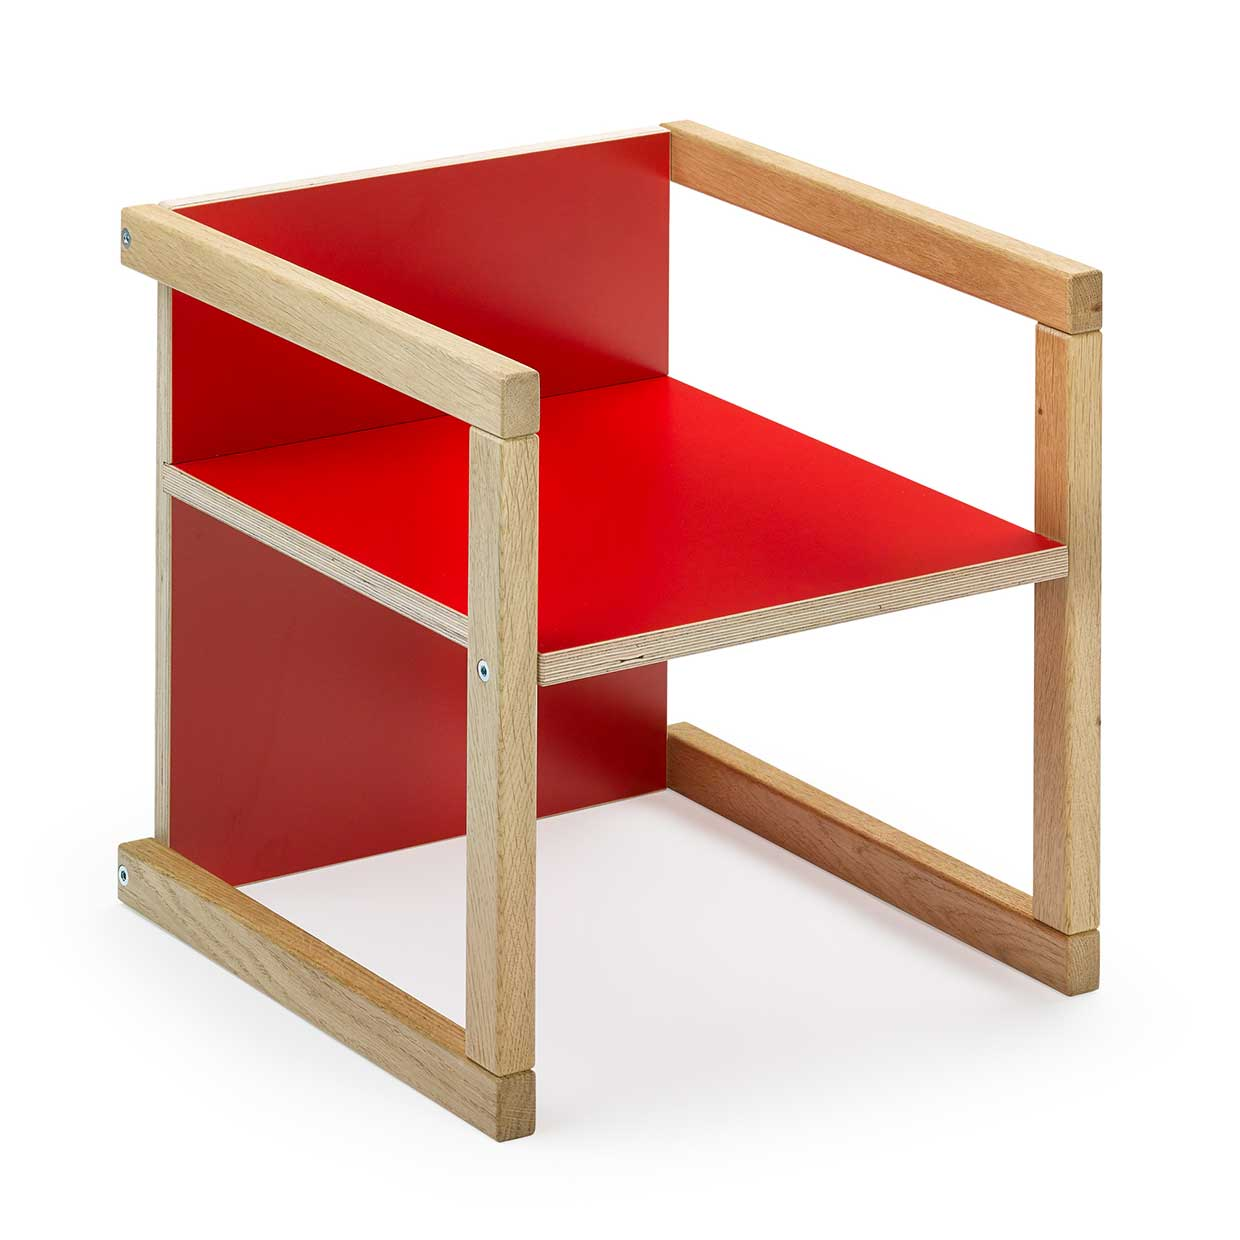 Kinderstuhl Design Jynx Series Growing Furniture By Daniel Hahnemann 3